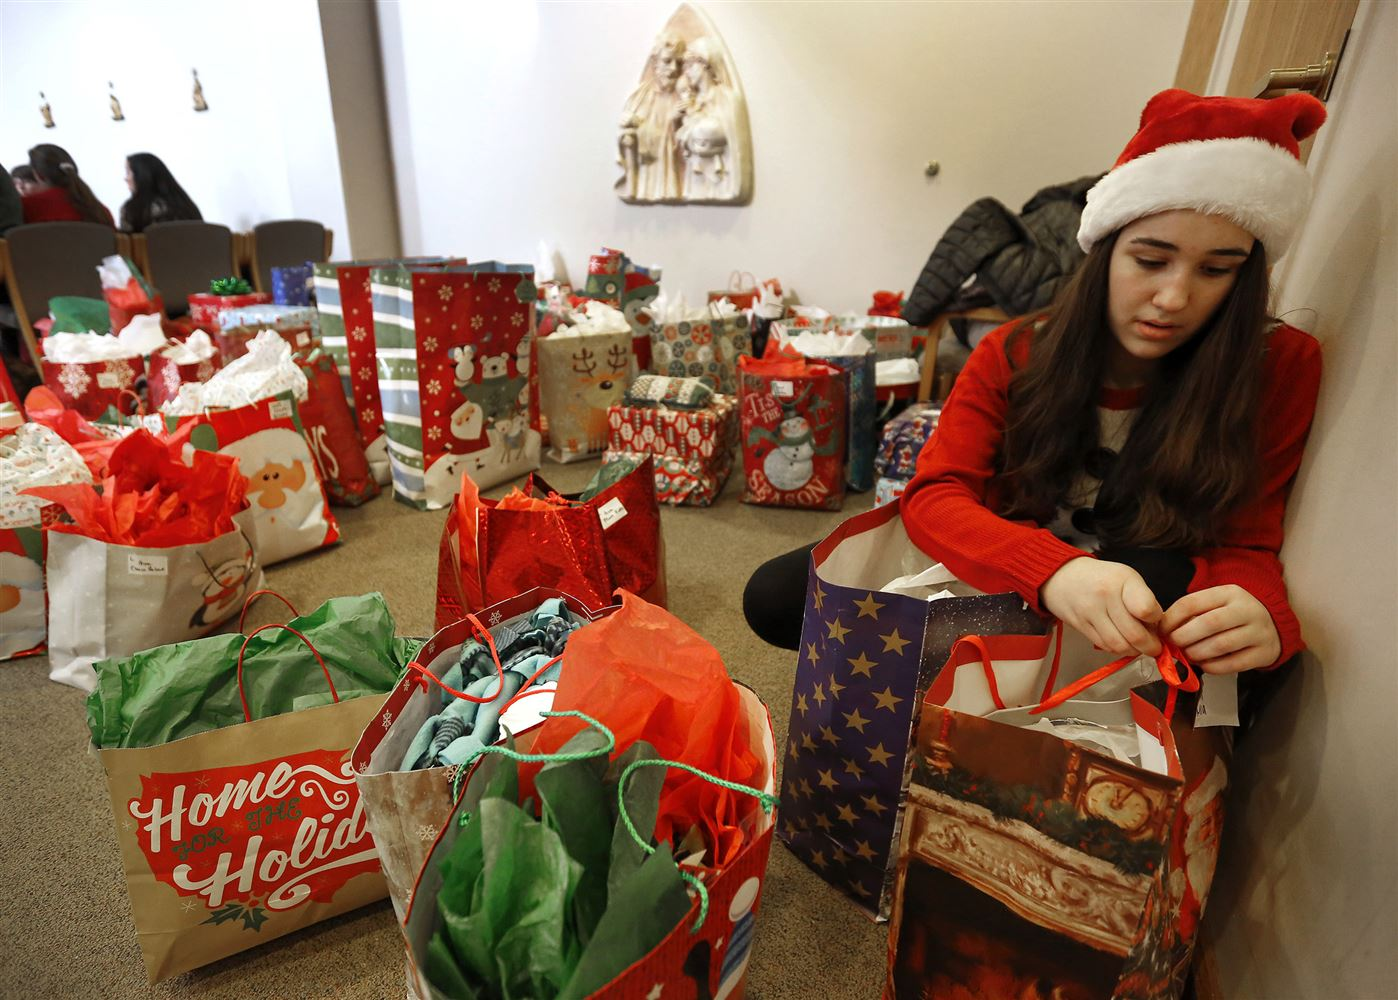 Catholic groups remember others during Christmas - Toy drives ...